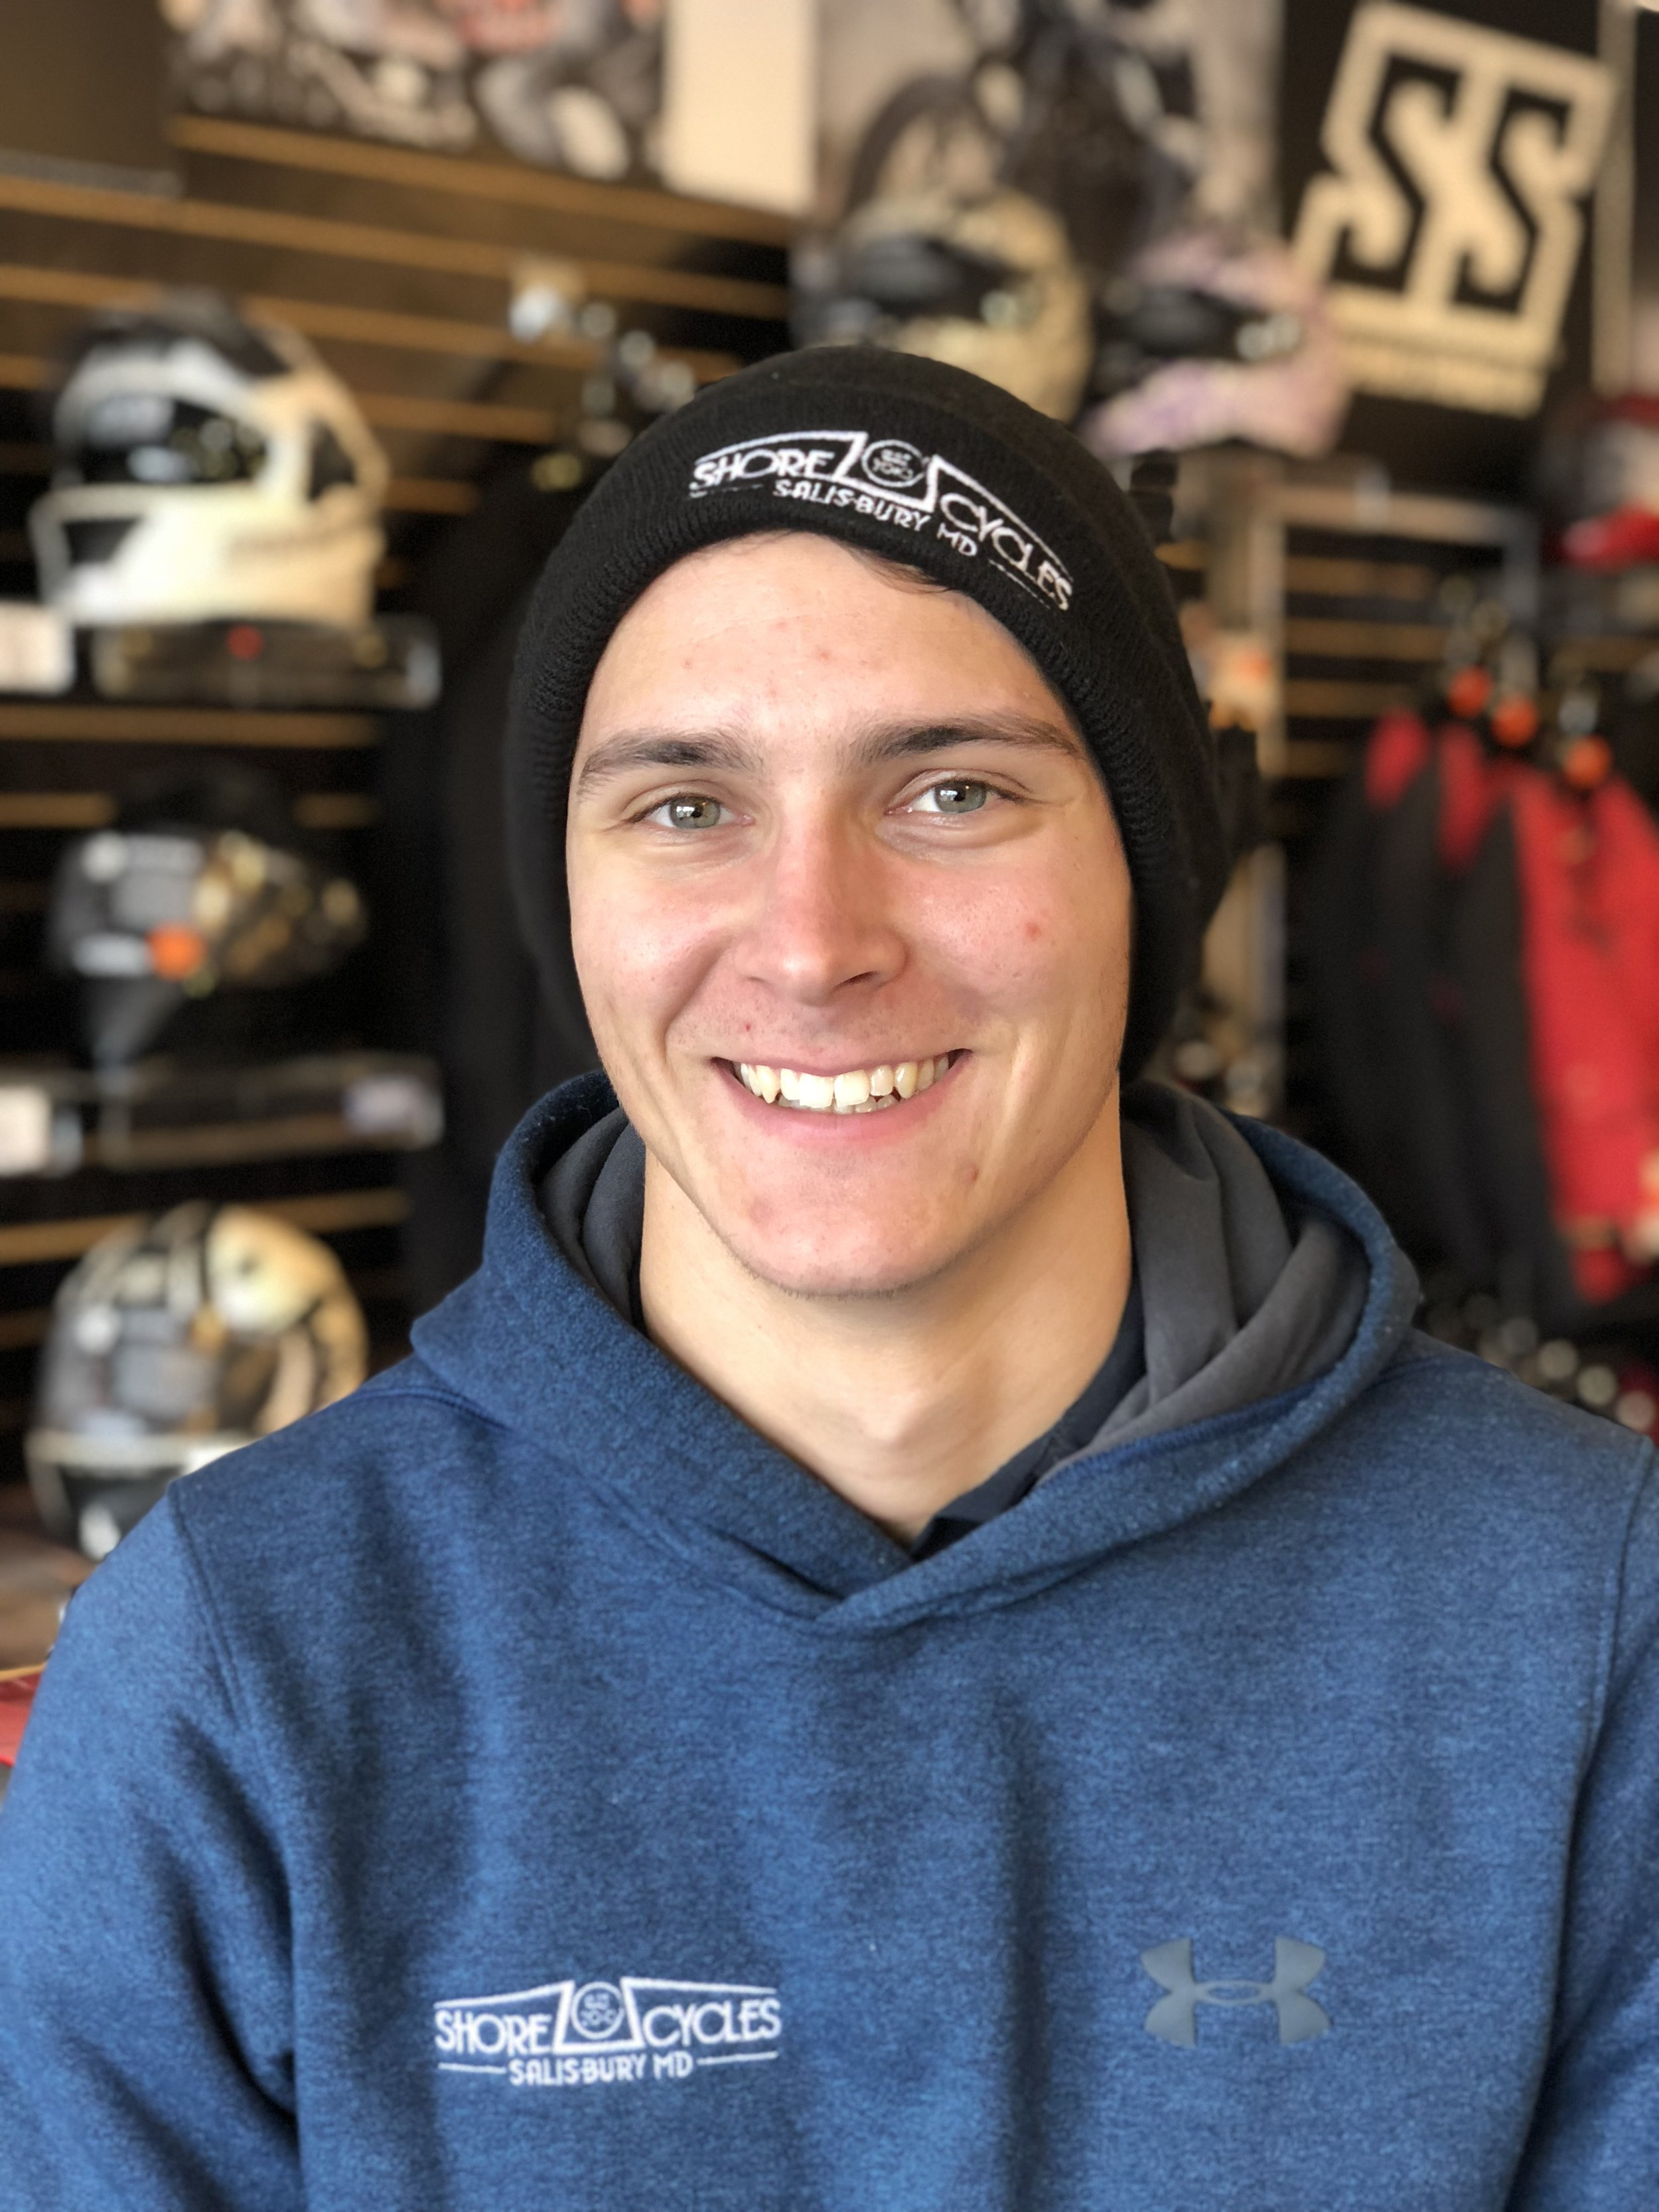 Alex Terlizzi , Motorcycle Tech   Rides : 1978 Honda CX500   Favorite Food : Possibly donuts